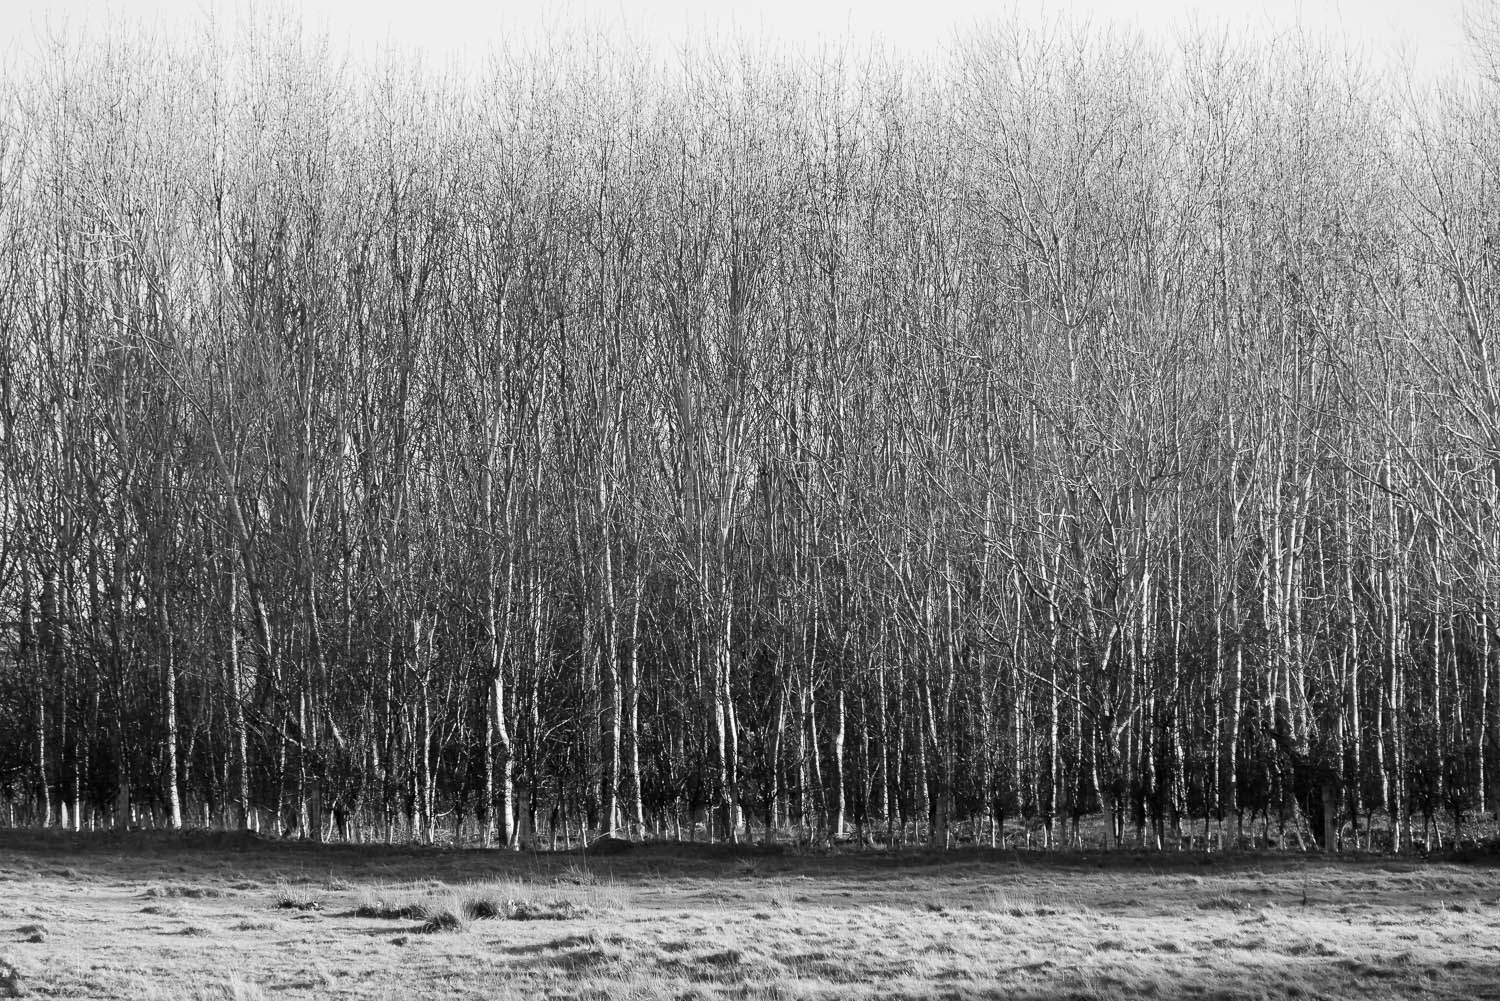 winter-trees-rows-Gloucestershire-Jo-Kearney-photos-landscape-photography-video-landscapes.jpg